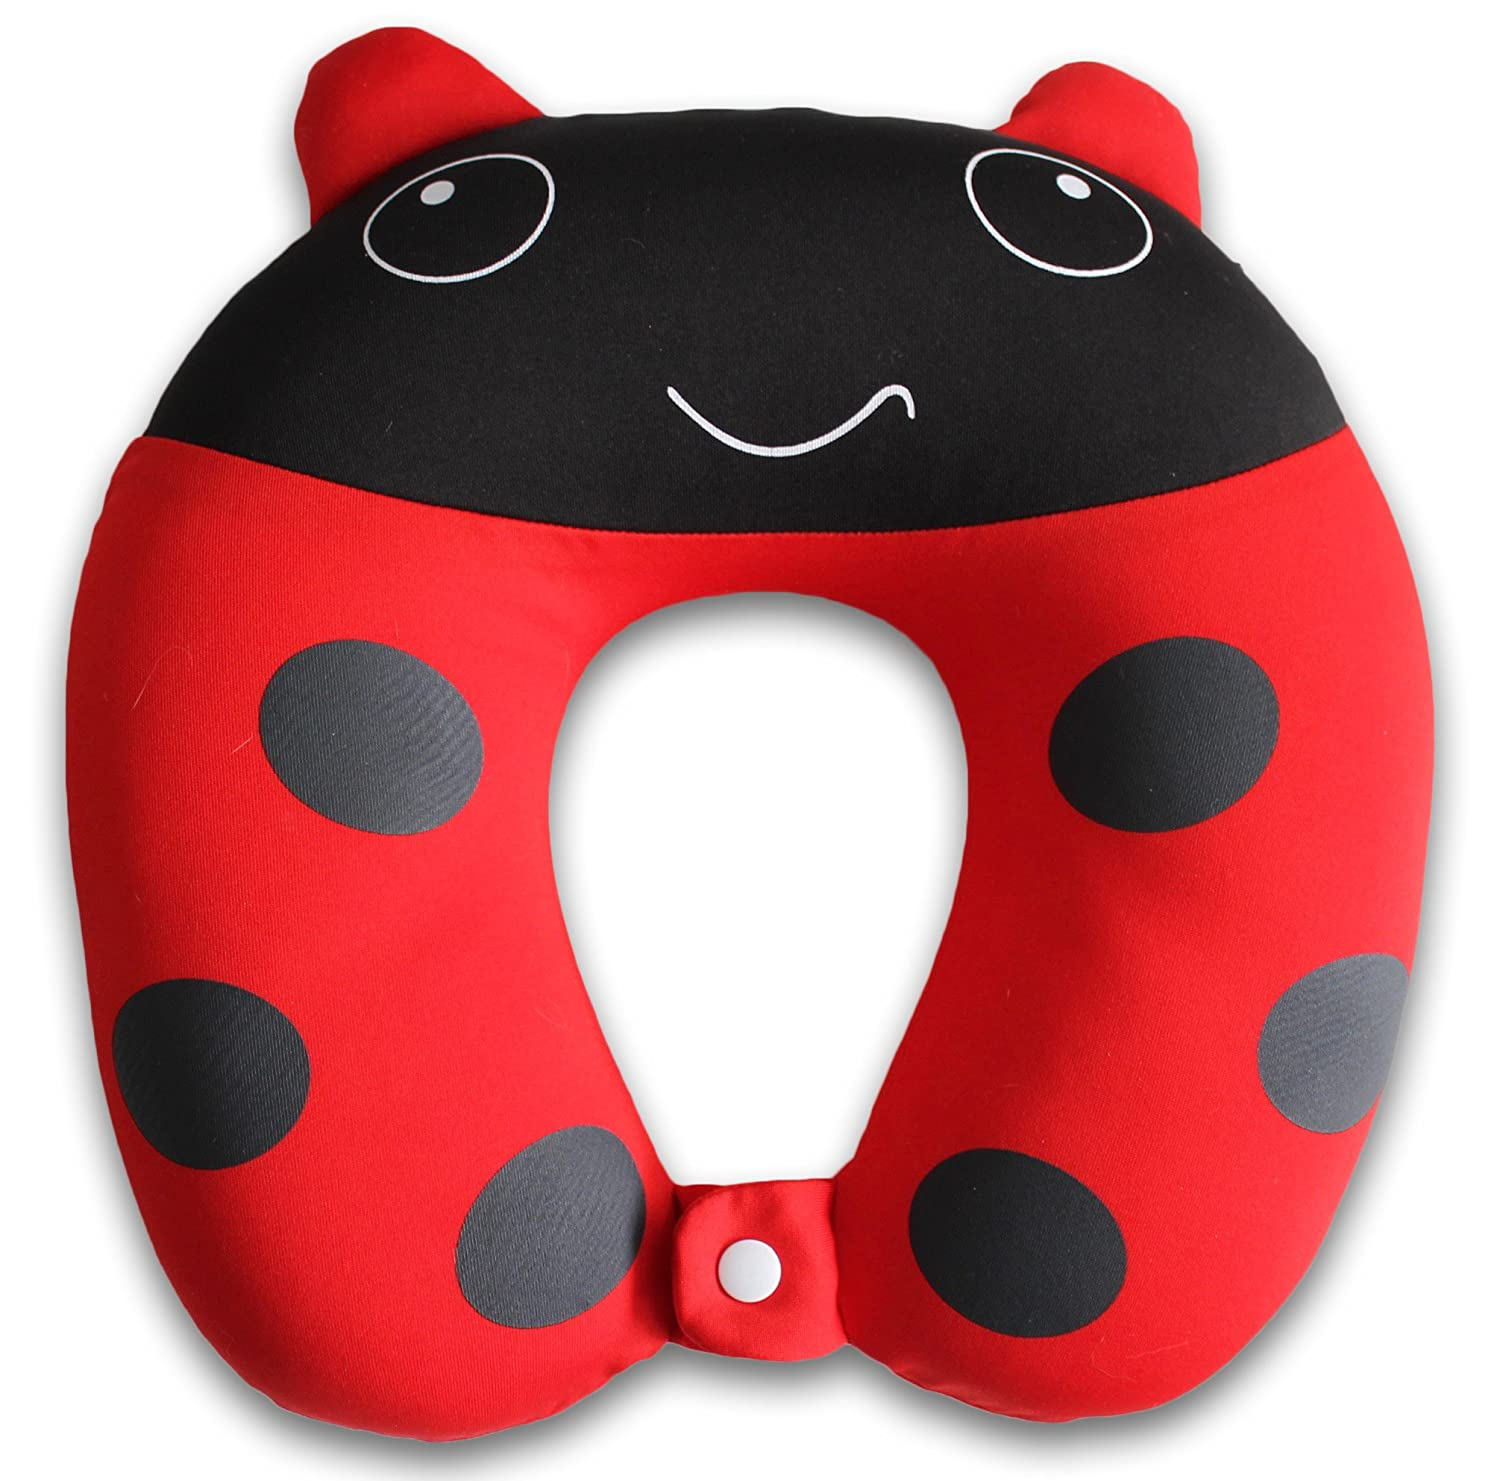 Nido Nest Kids Travel Neck Pillow   Best For Long Flights, Road Trips Or Gifts For Children   U Shaped Pillows Sized Best For Toddler, Preschool, Kindergarten, Elementary Children   Ladybug by Nido Nest